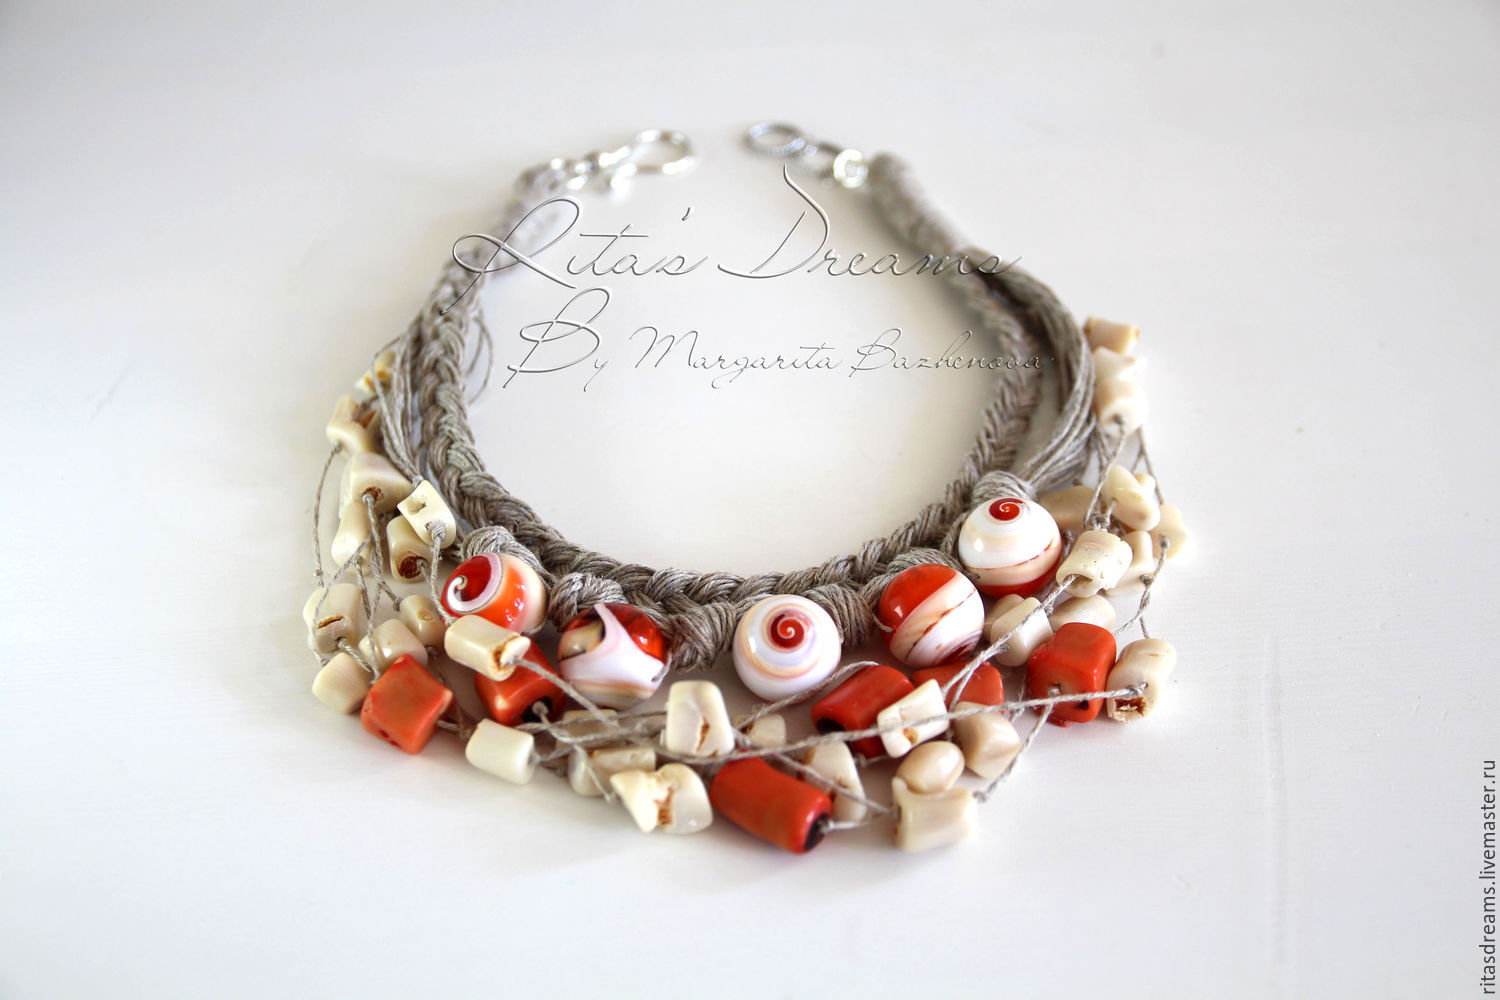 Surround necklace made of linen with white and orange coral and shells. All beads of this necklace are born in the sea and keep a piece of it...